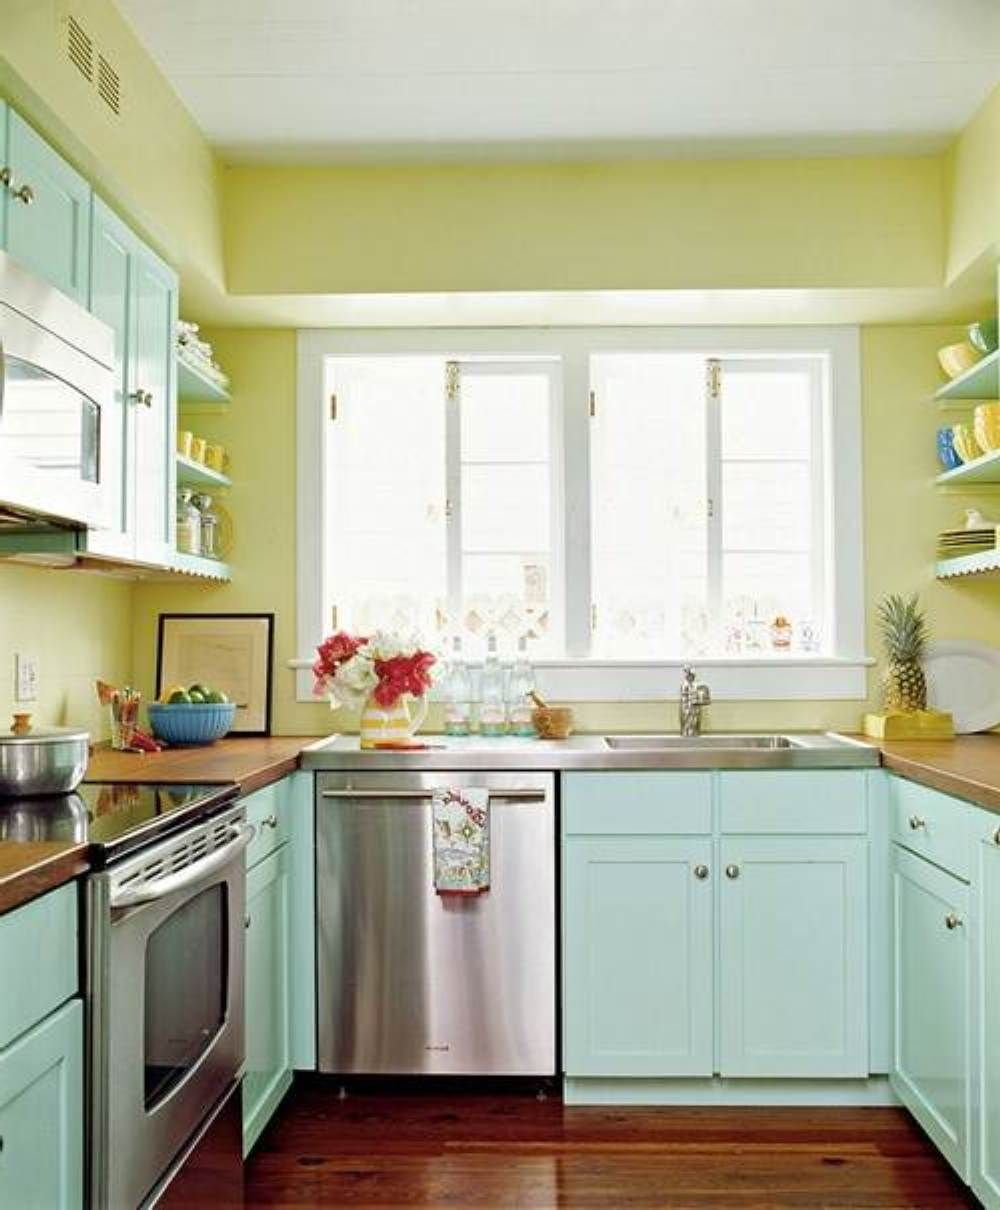 paint color ideas for a small kitchen. paint colors for small